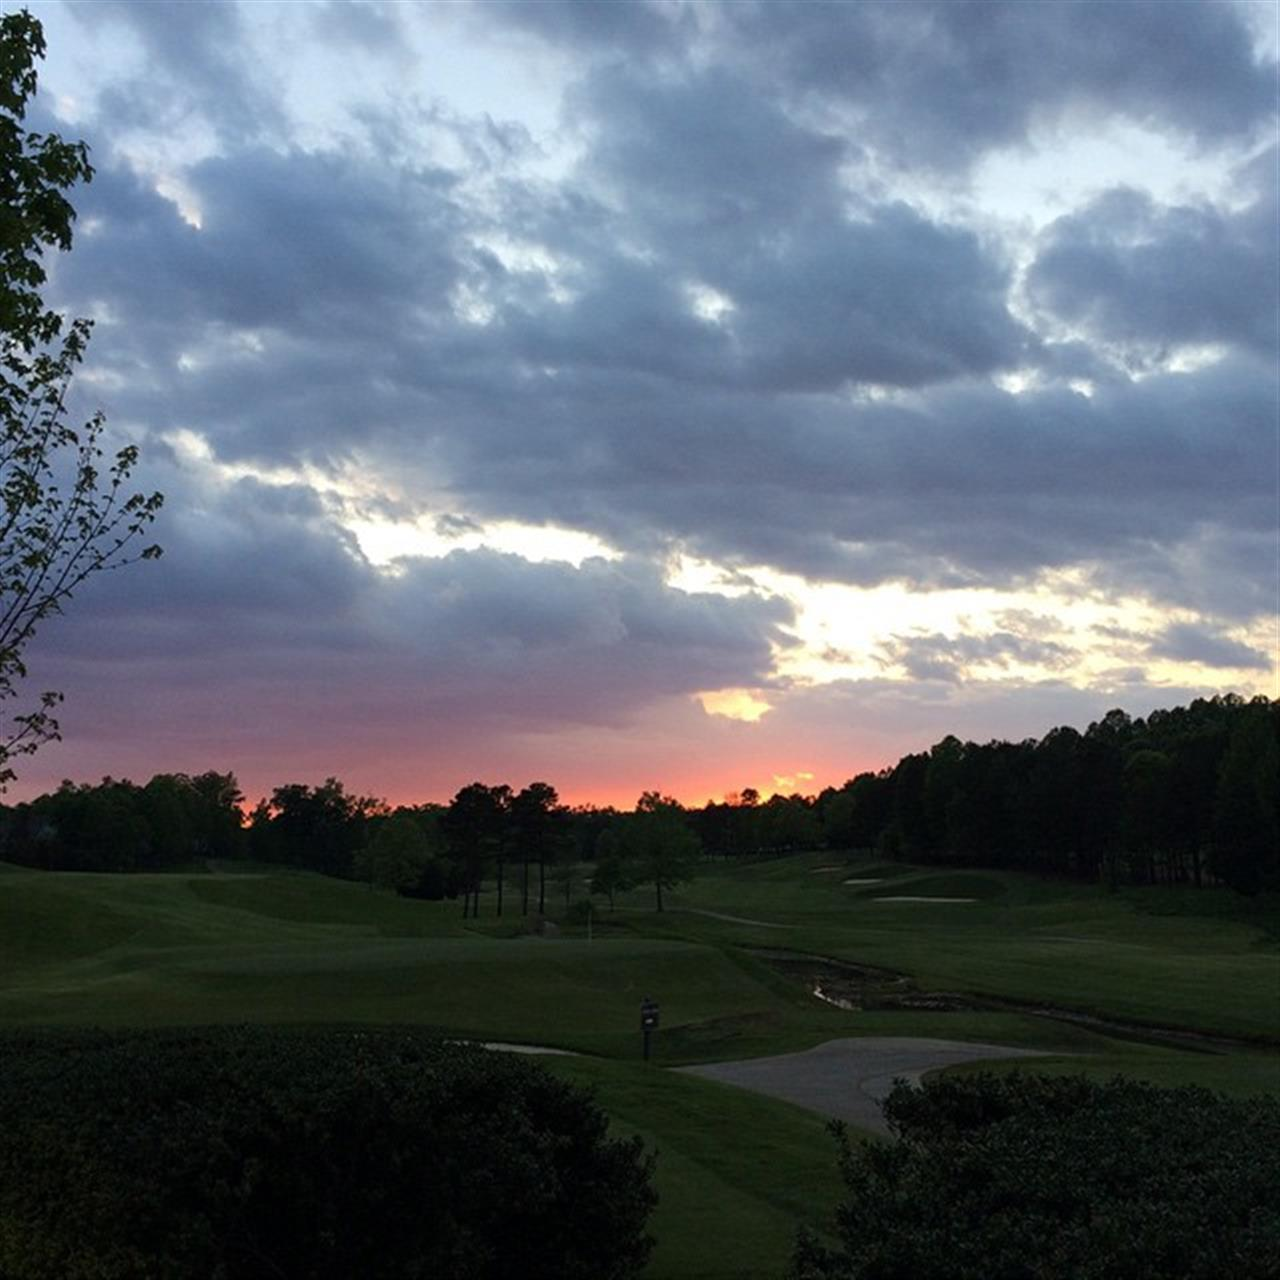 The sunset in Northstone Country Club (Huntersville, NC).